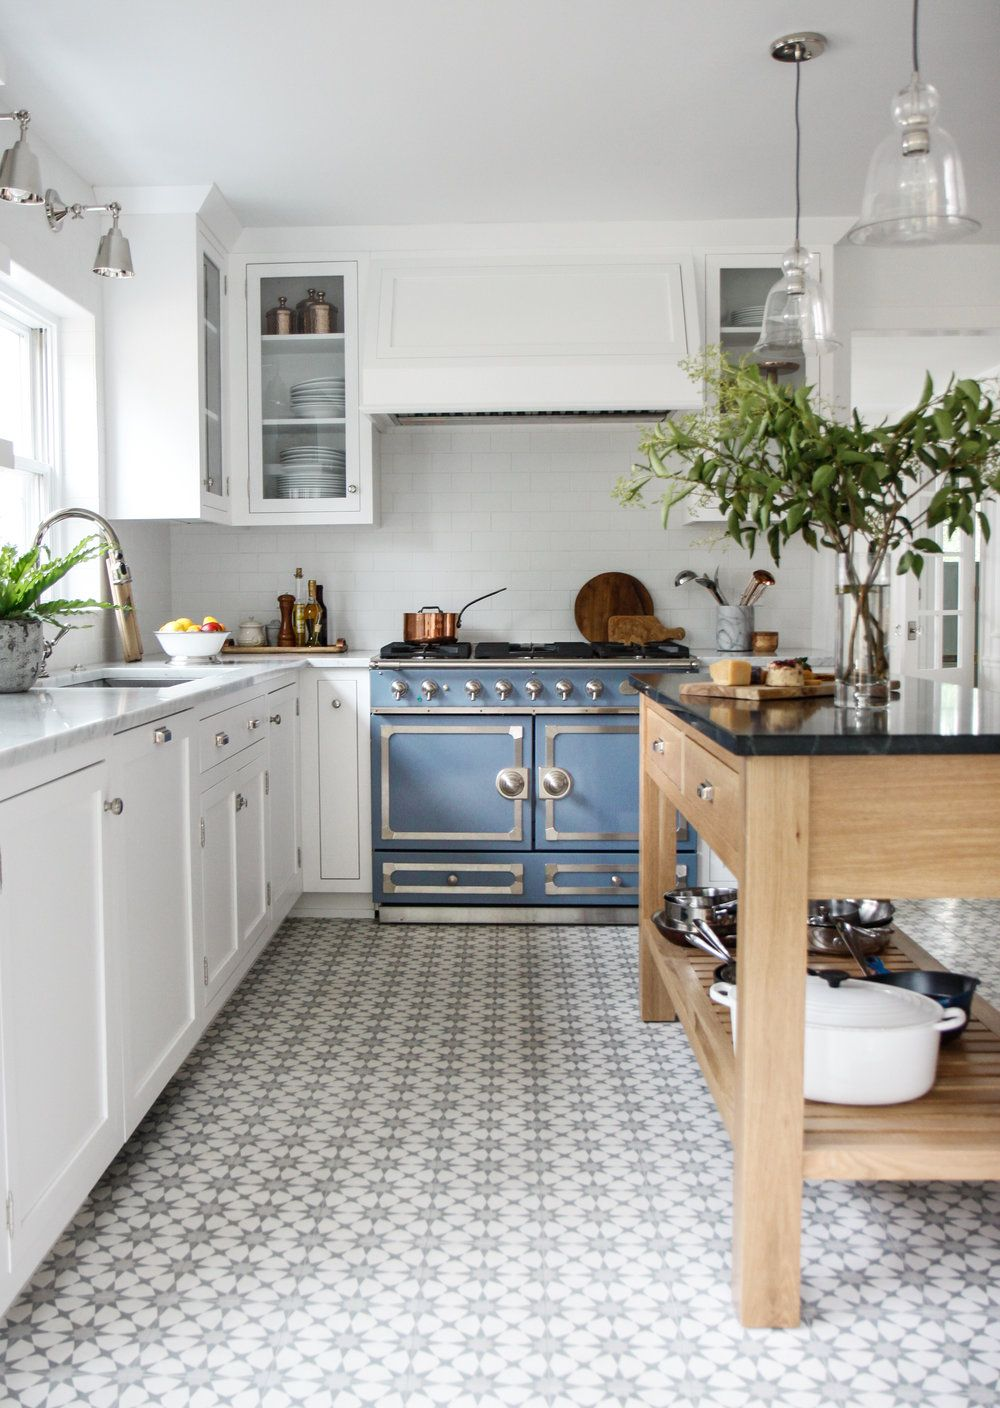 8 Great White Kitchens That Might Make Me Rethink Color The Grit And Polish Kitchen Design Small White Kitchen Tiles Kitchen Remodel Small white kitchen tiles